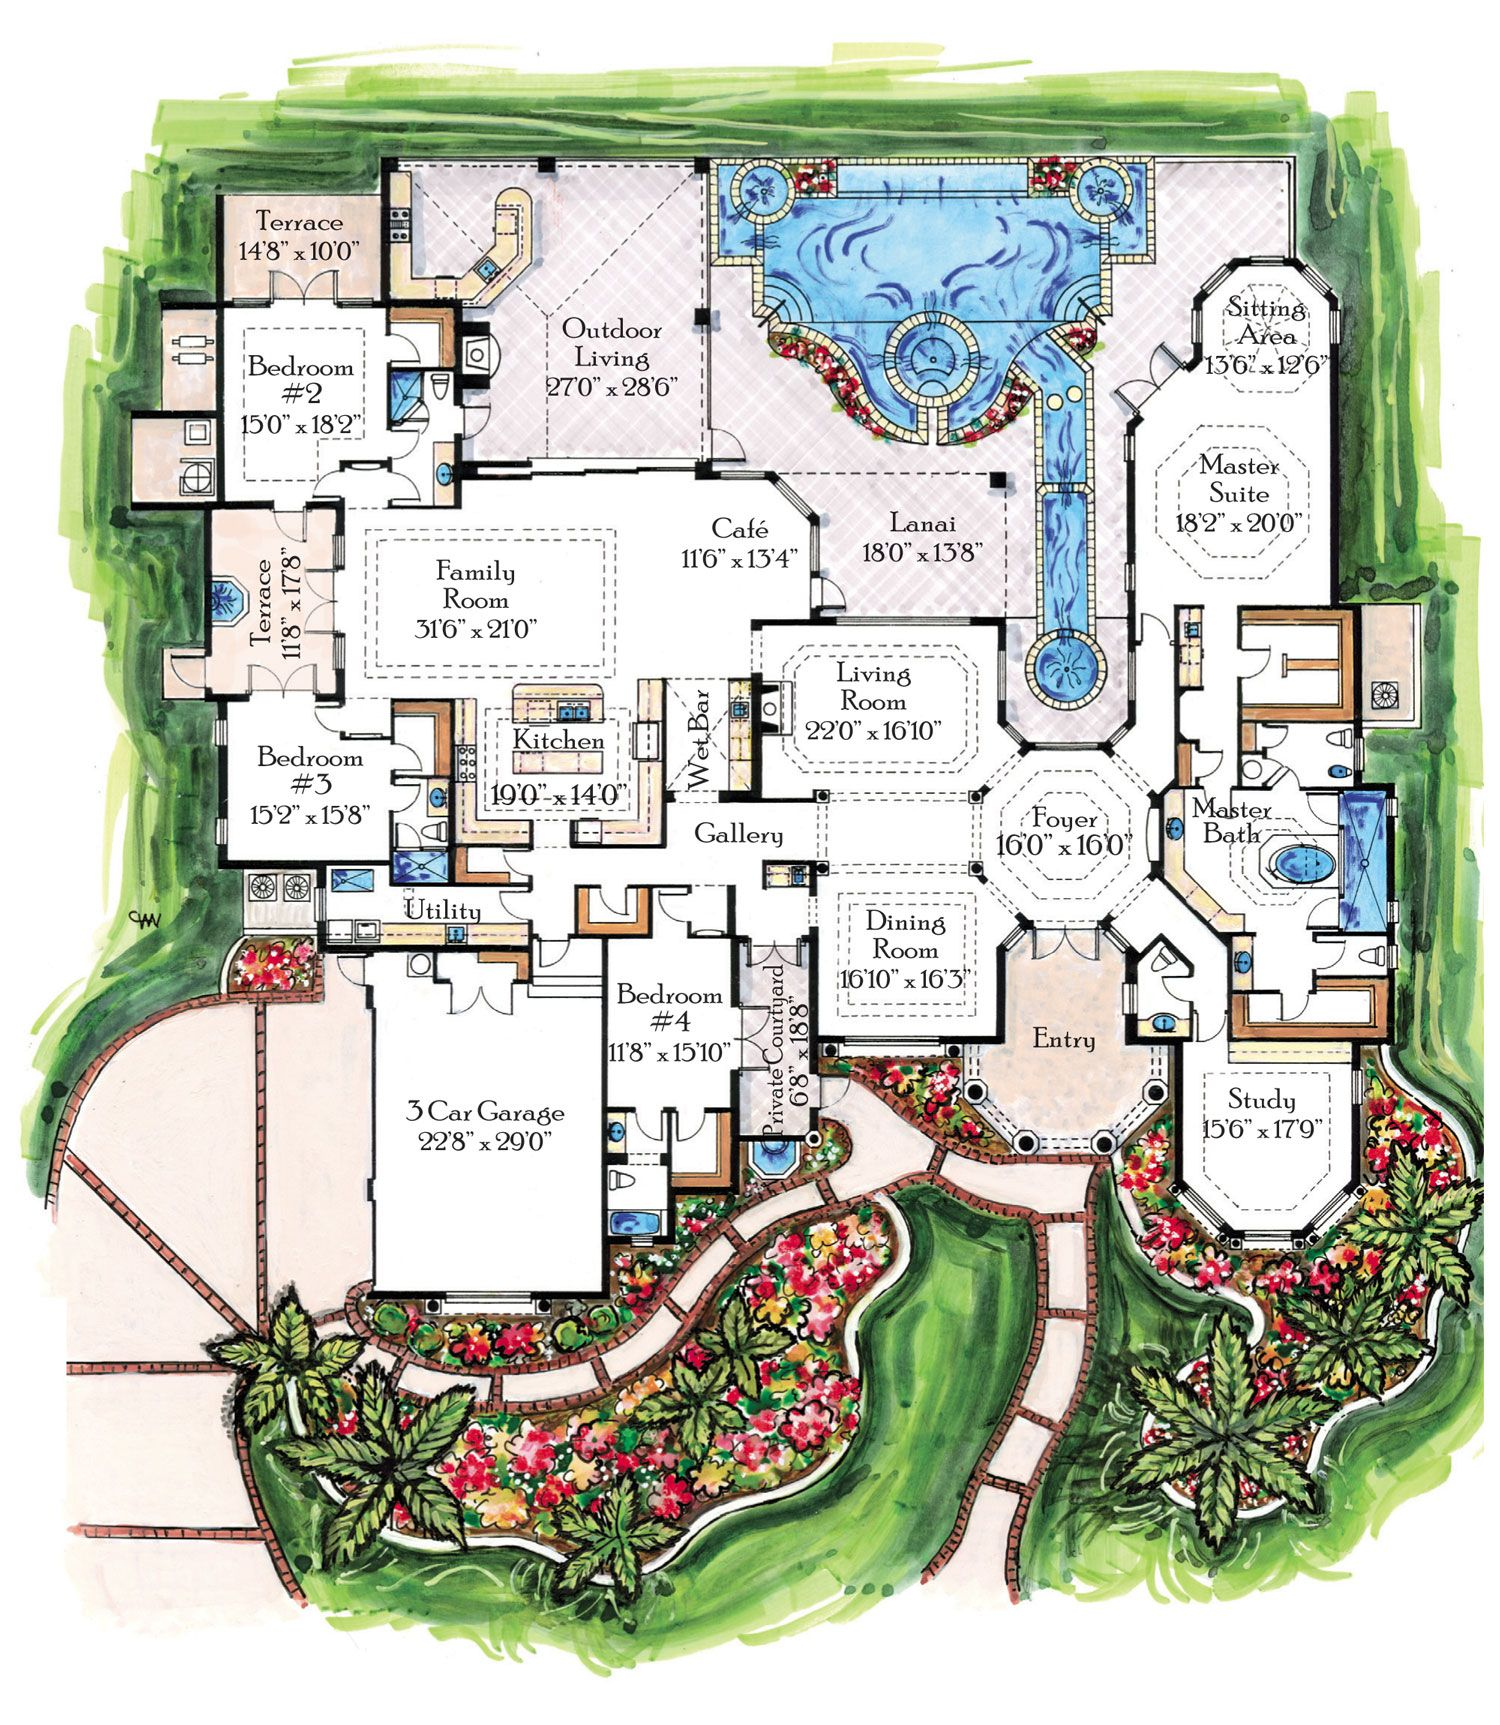 Luxury homes and plans designs for traditional castles Executive floor plans